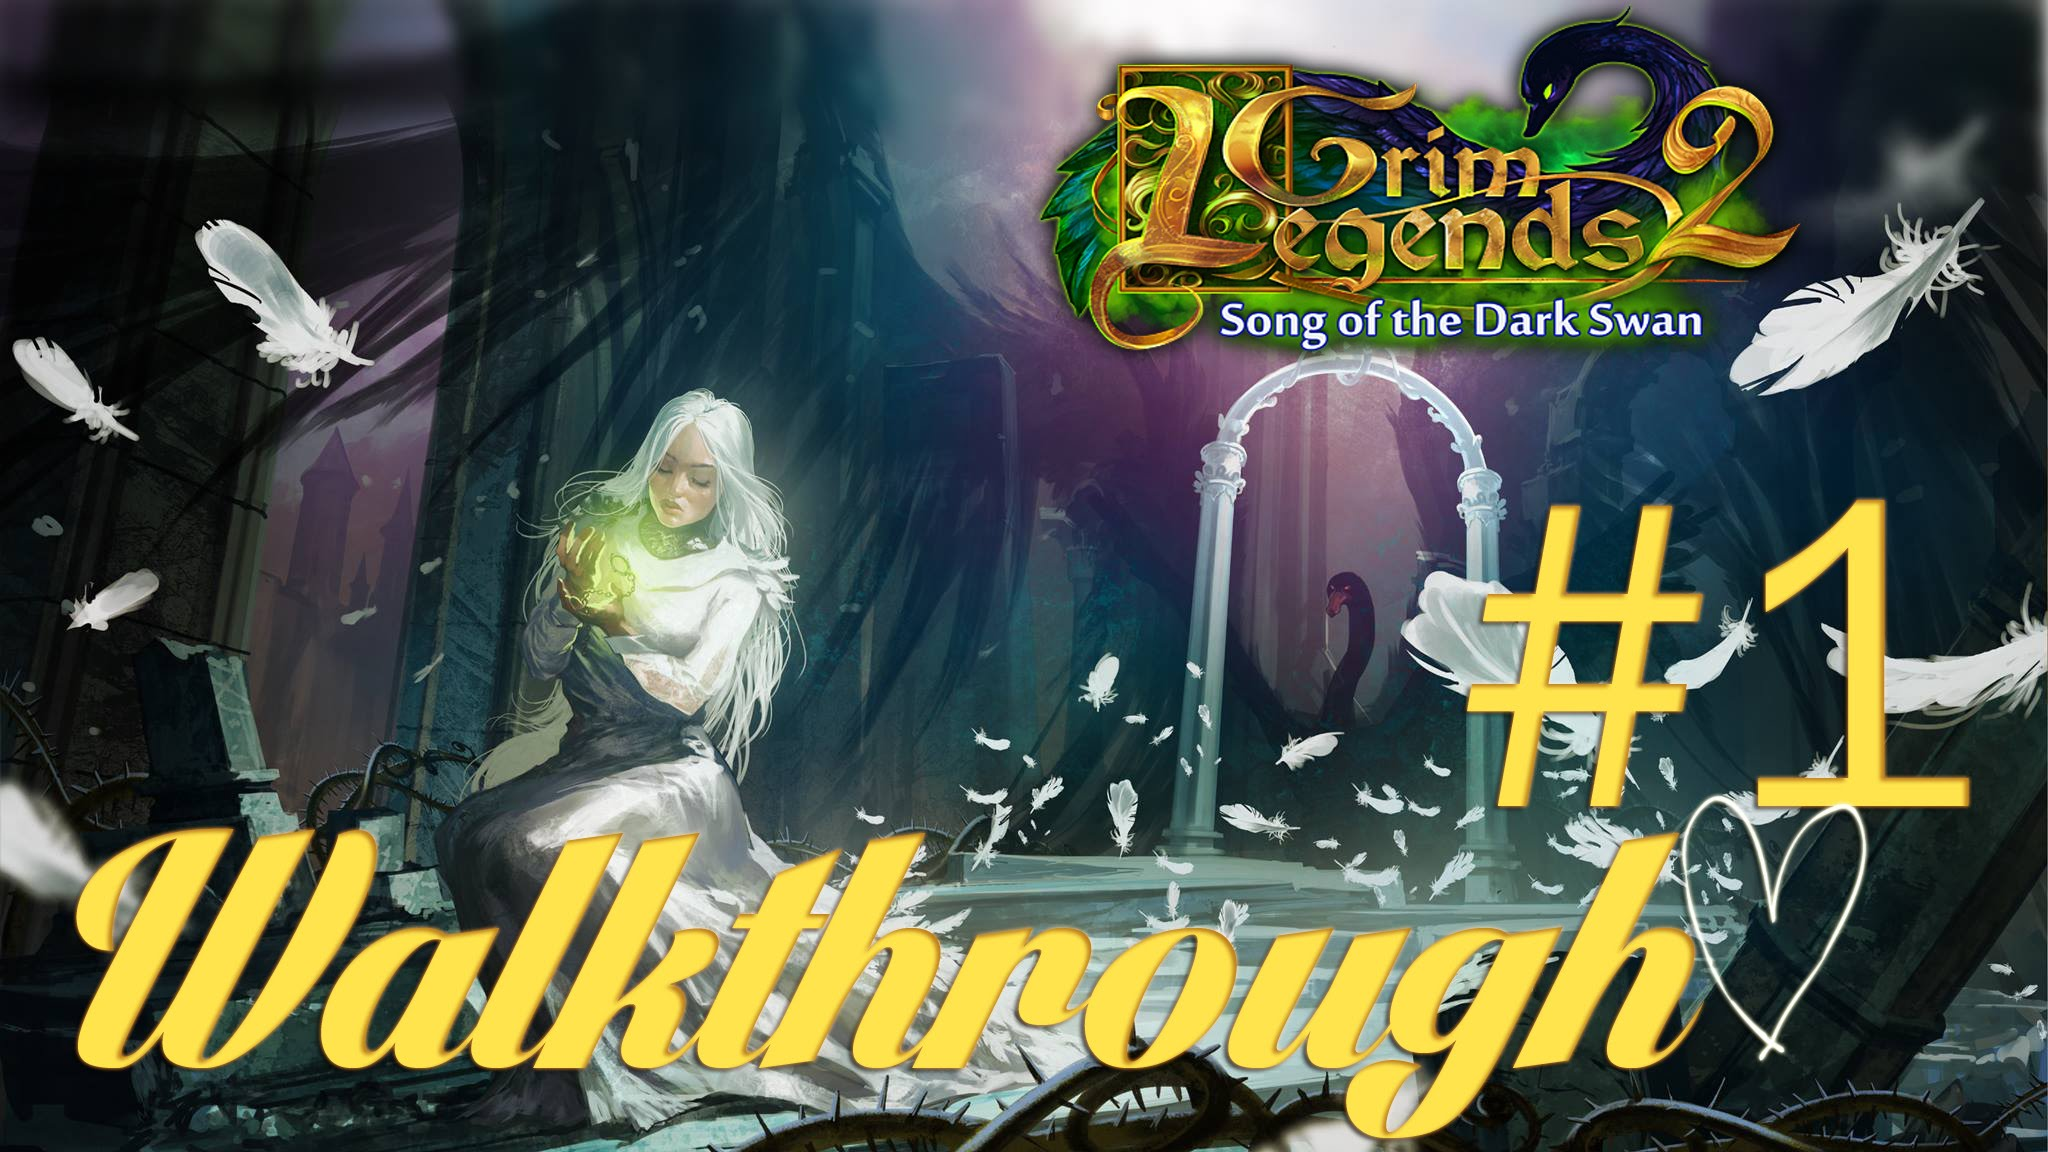 Grim Legends 2: Song Of The Dark Swan Backgrounds, Compatible - PC, Mobile, Gadgets| 2048x1152 px